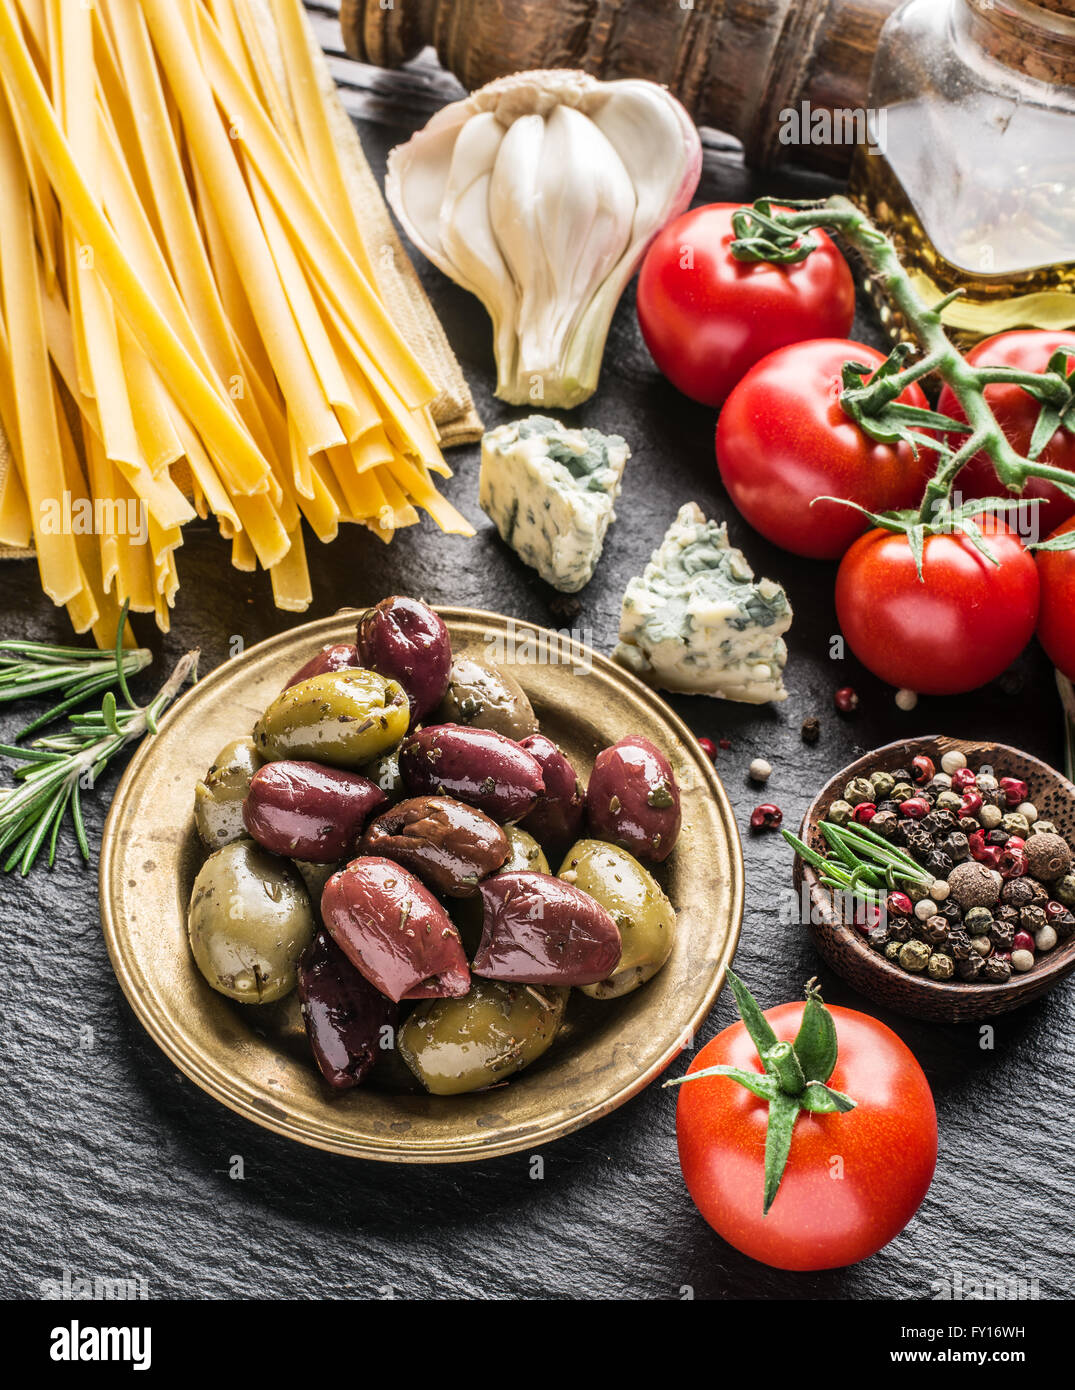 Pasta ingredients. Cherry-tomatoes, spaghetti pasta, rosemary and spices on a graphite board. - Stock Image